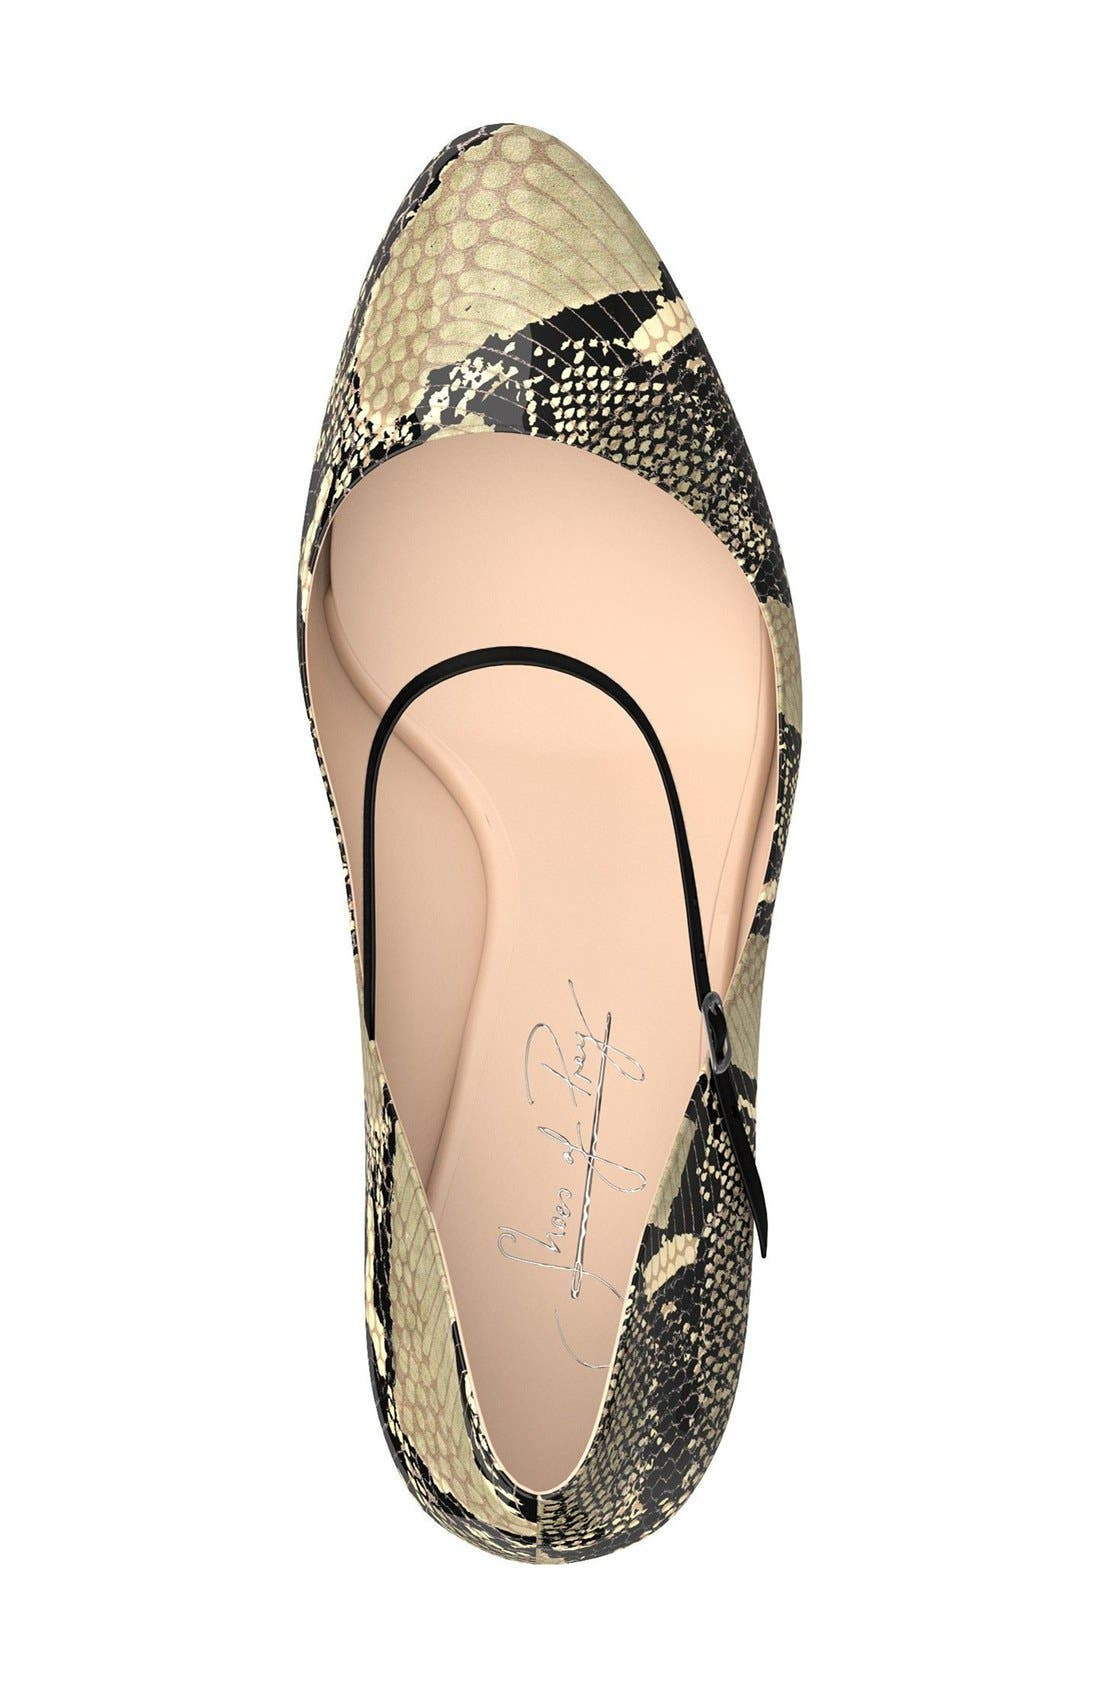 Mary Jane Pump,                             Alternate thumbnail 3, color,                             Beige Snake Print Leather